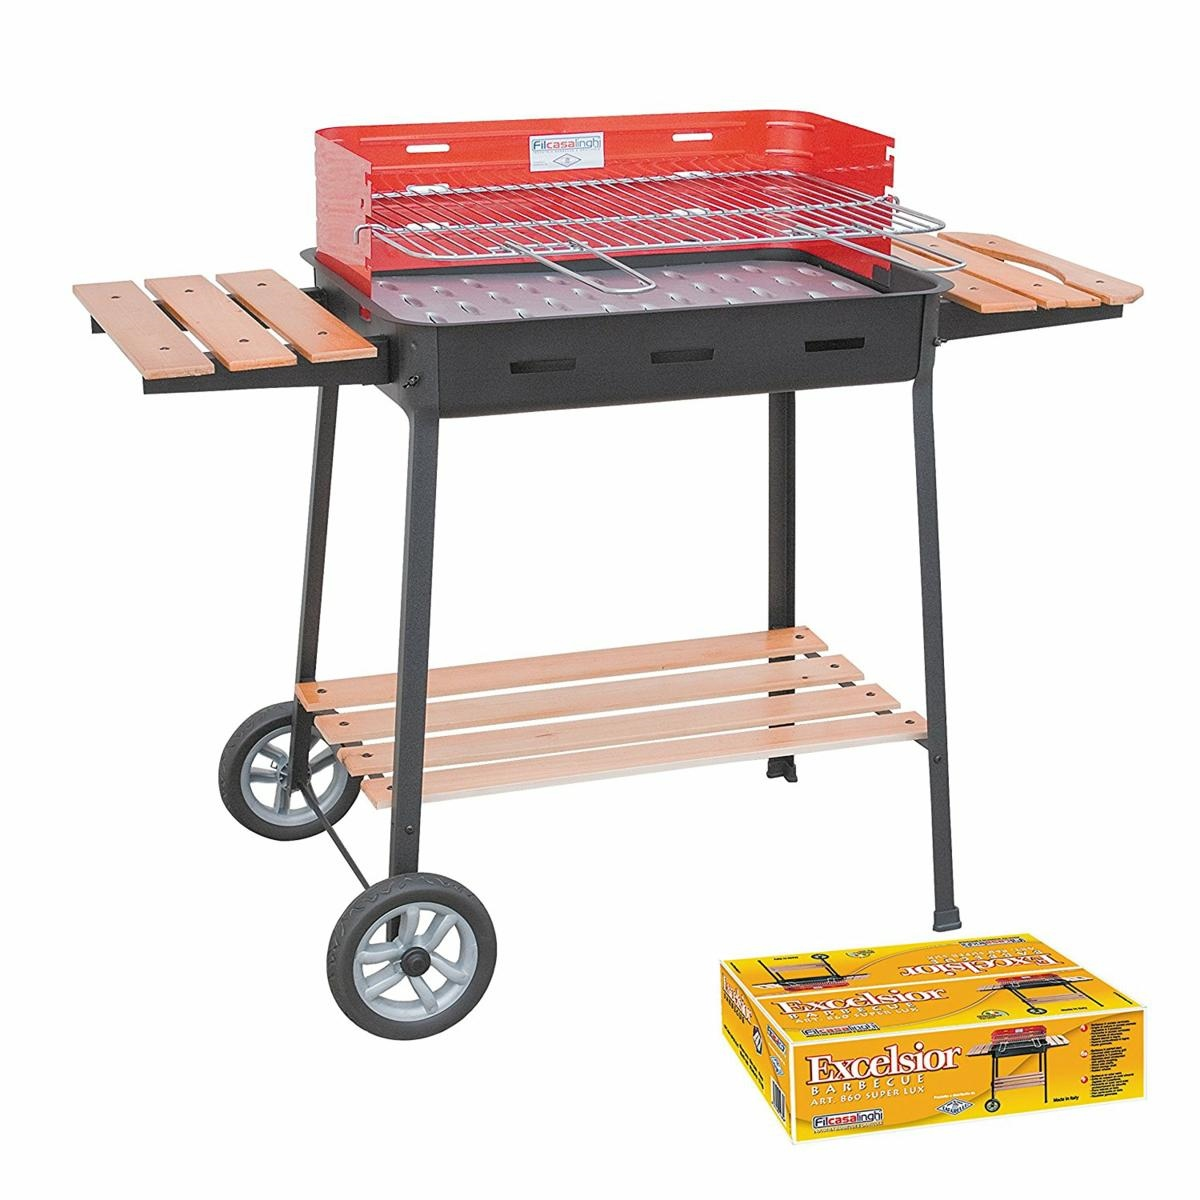 BARBECUE EXCELSIOR CM.63X43